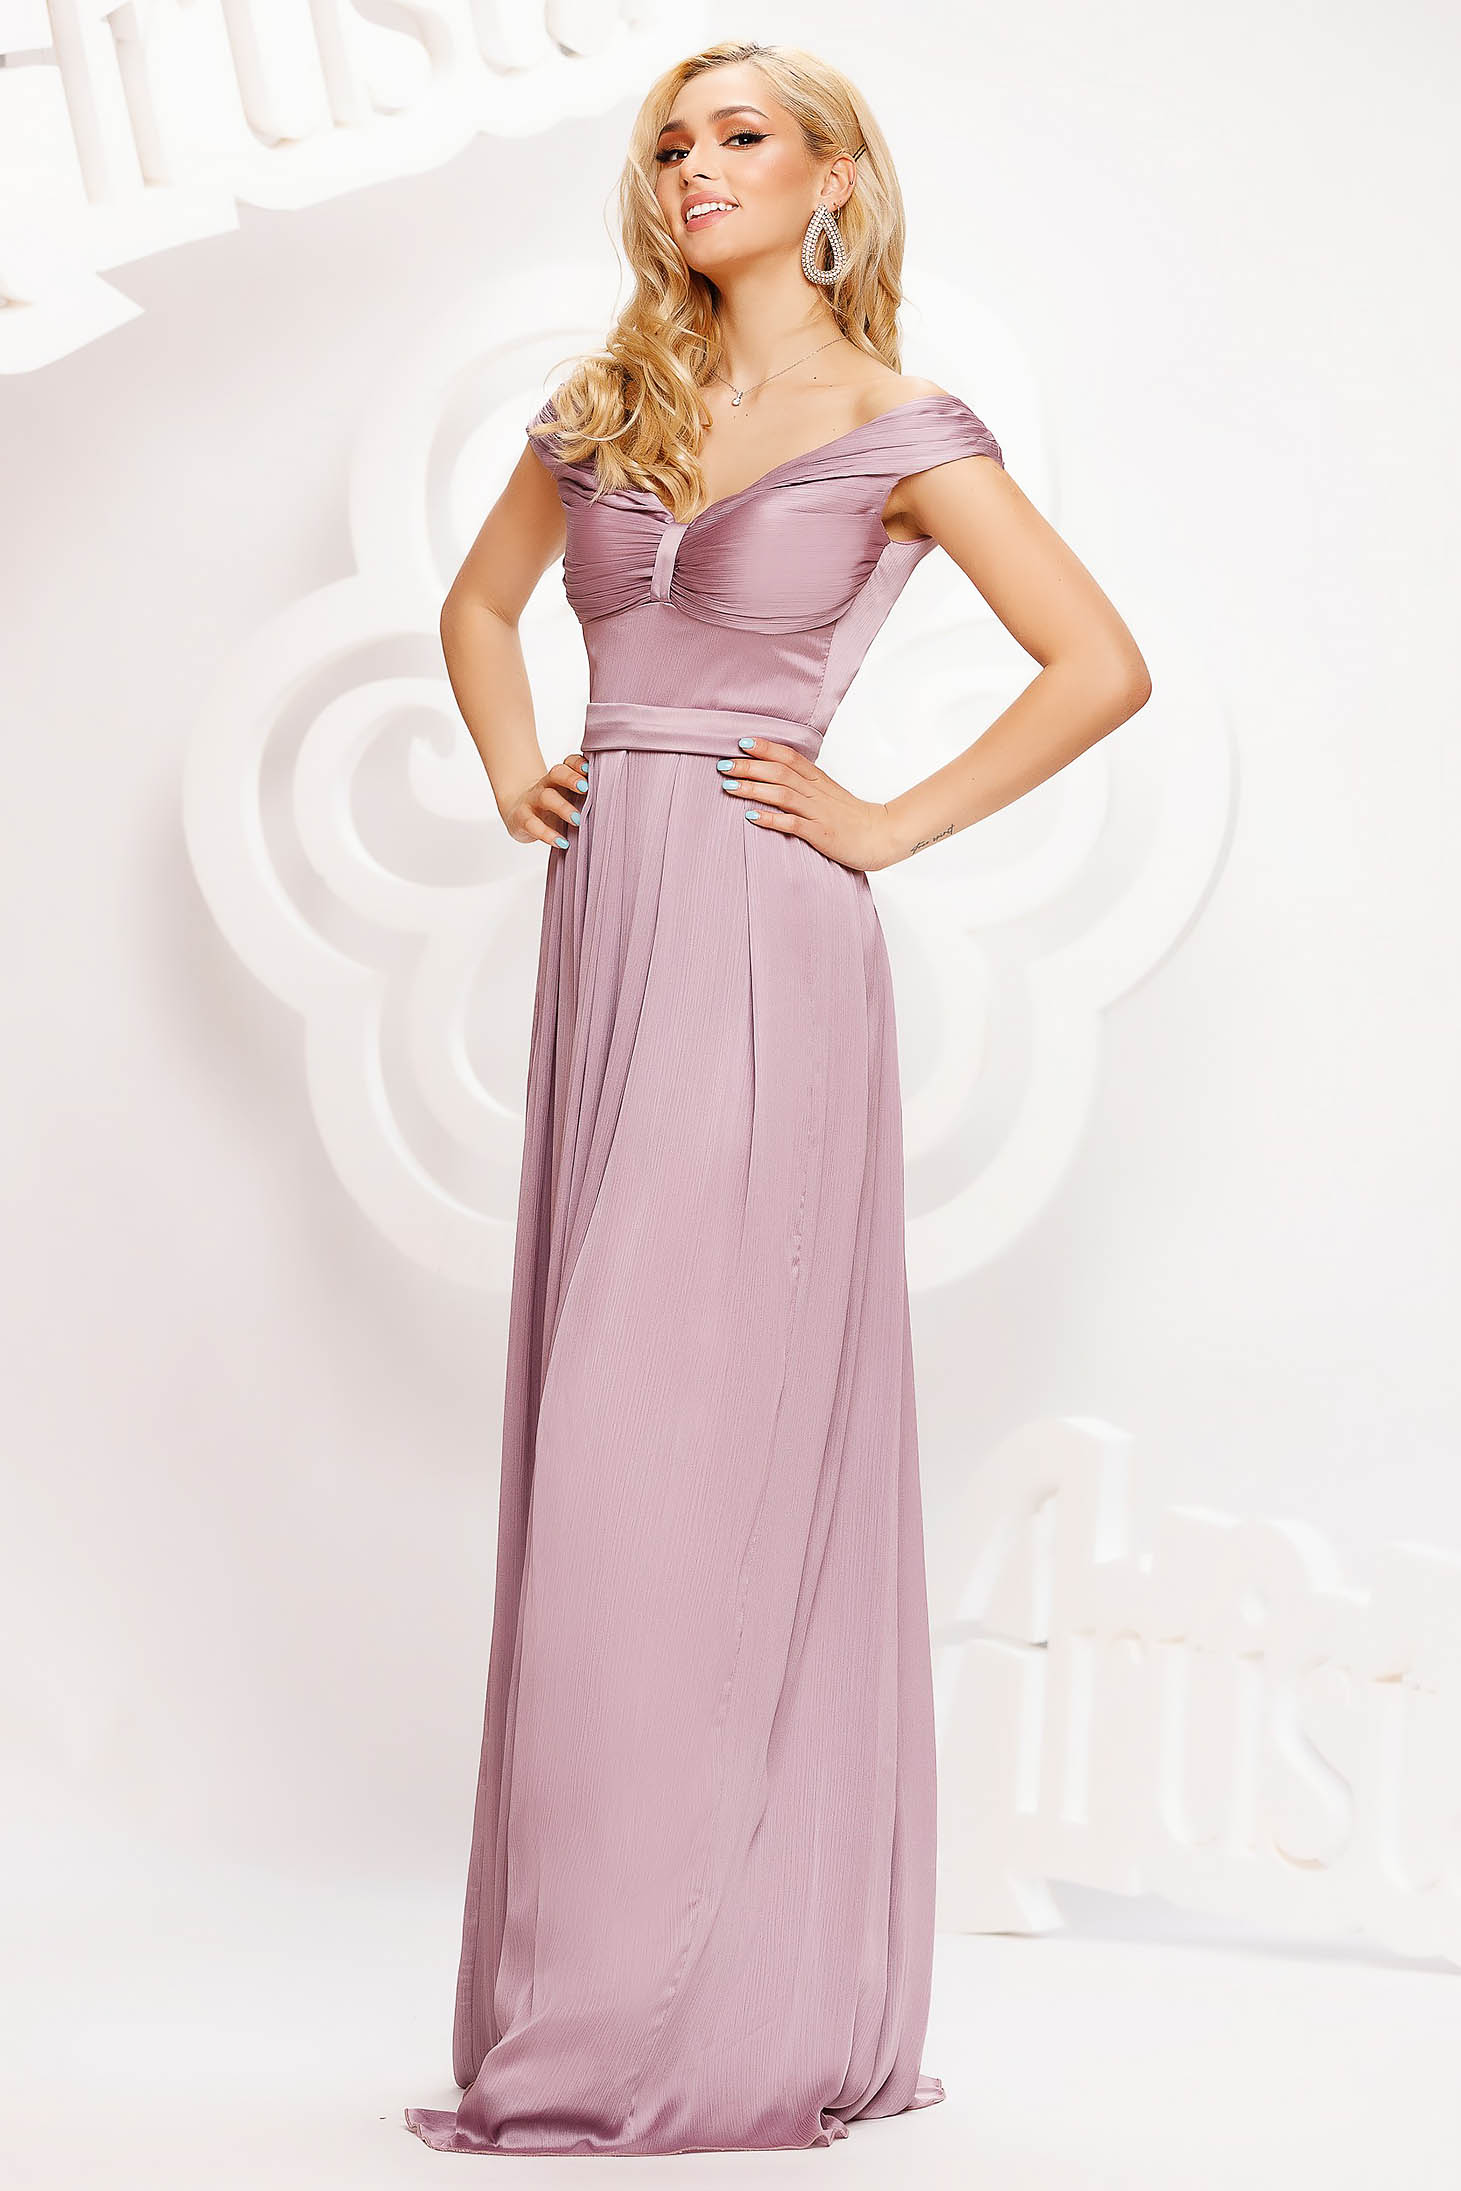 Lightpink dress long occasional cloche from satin naked shoulders